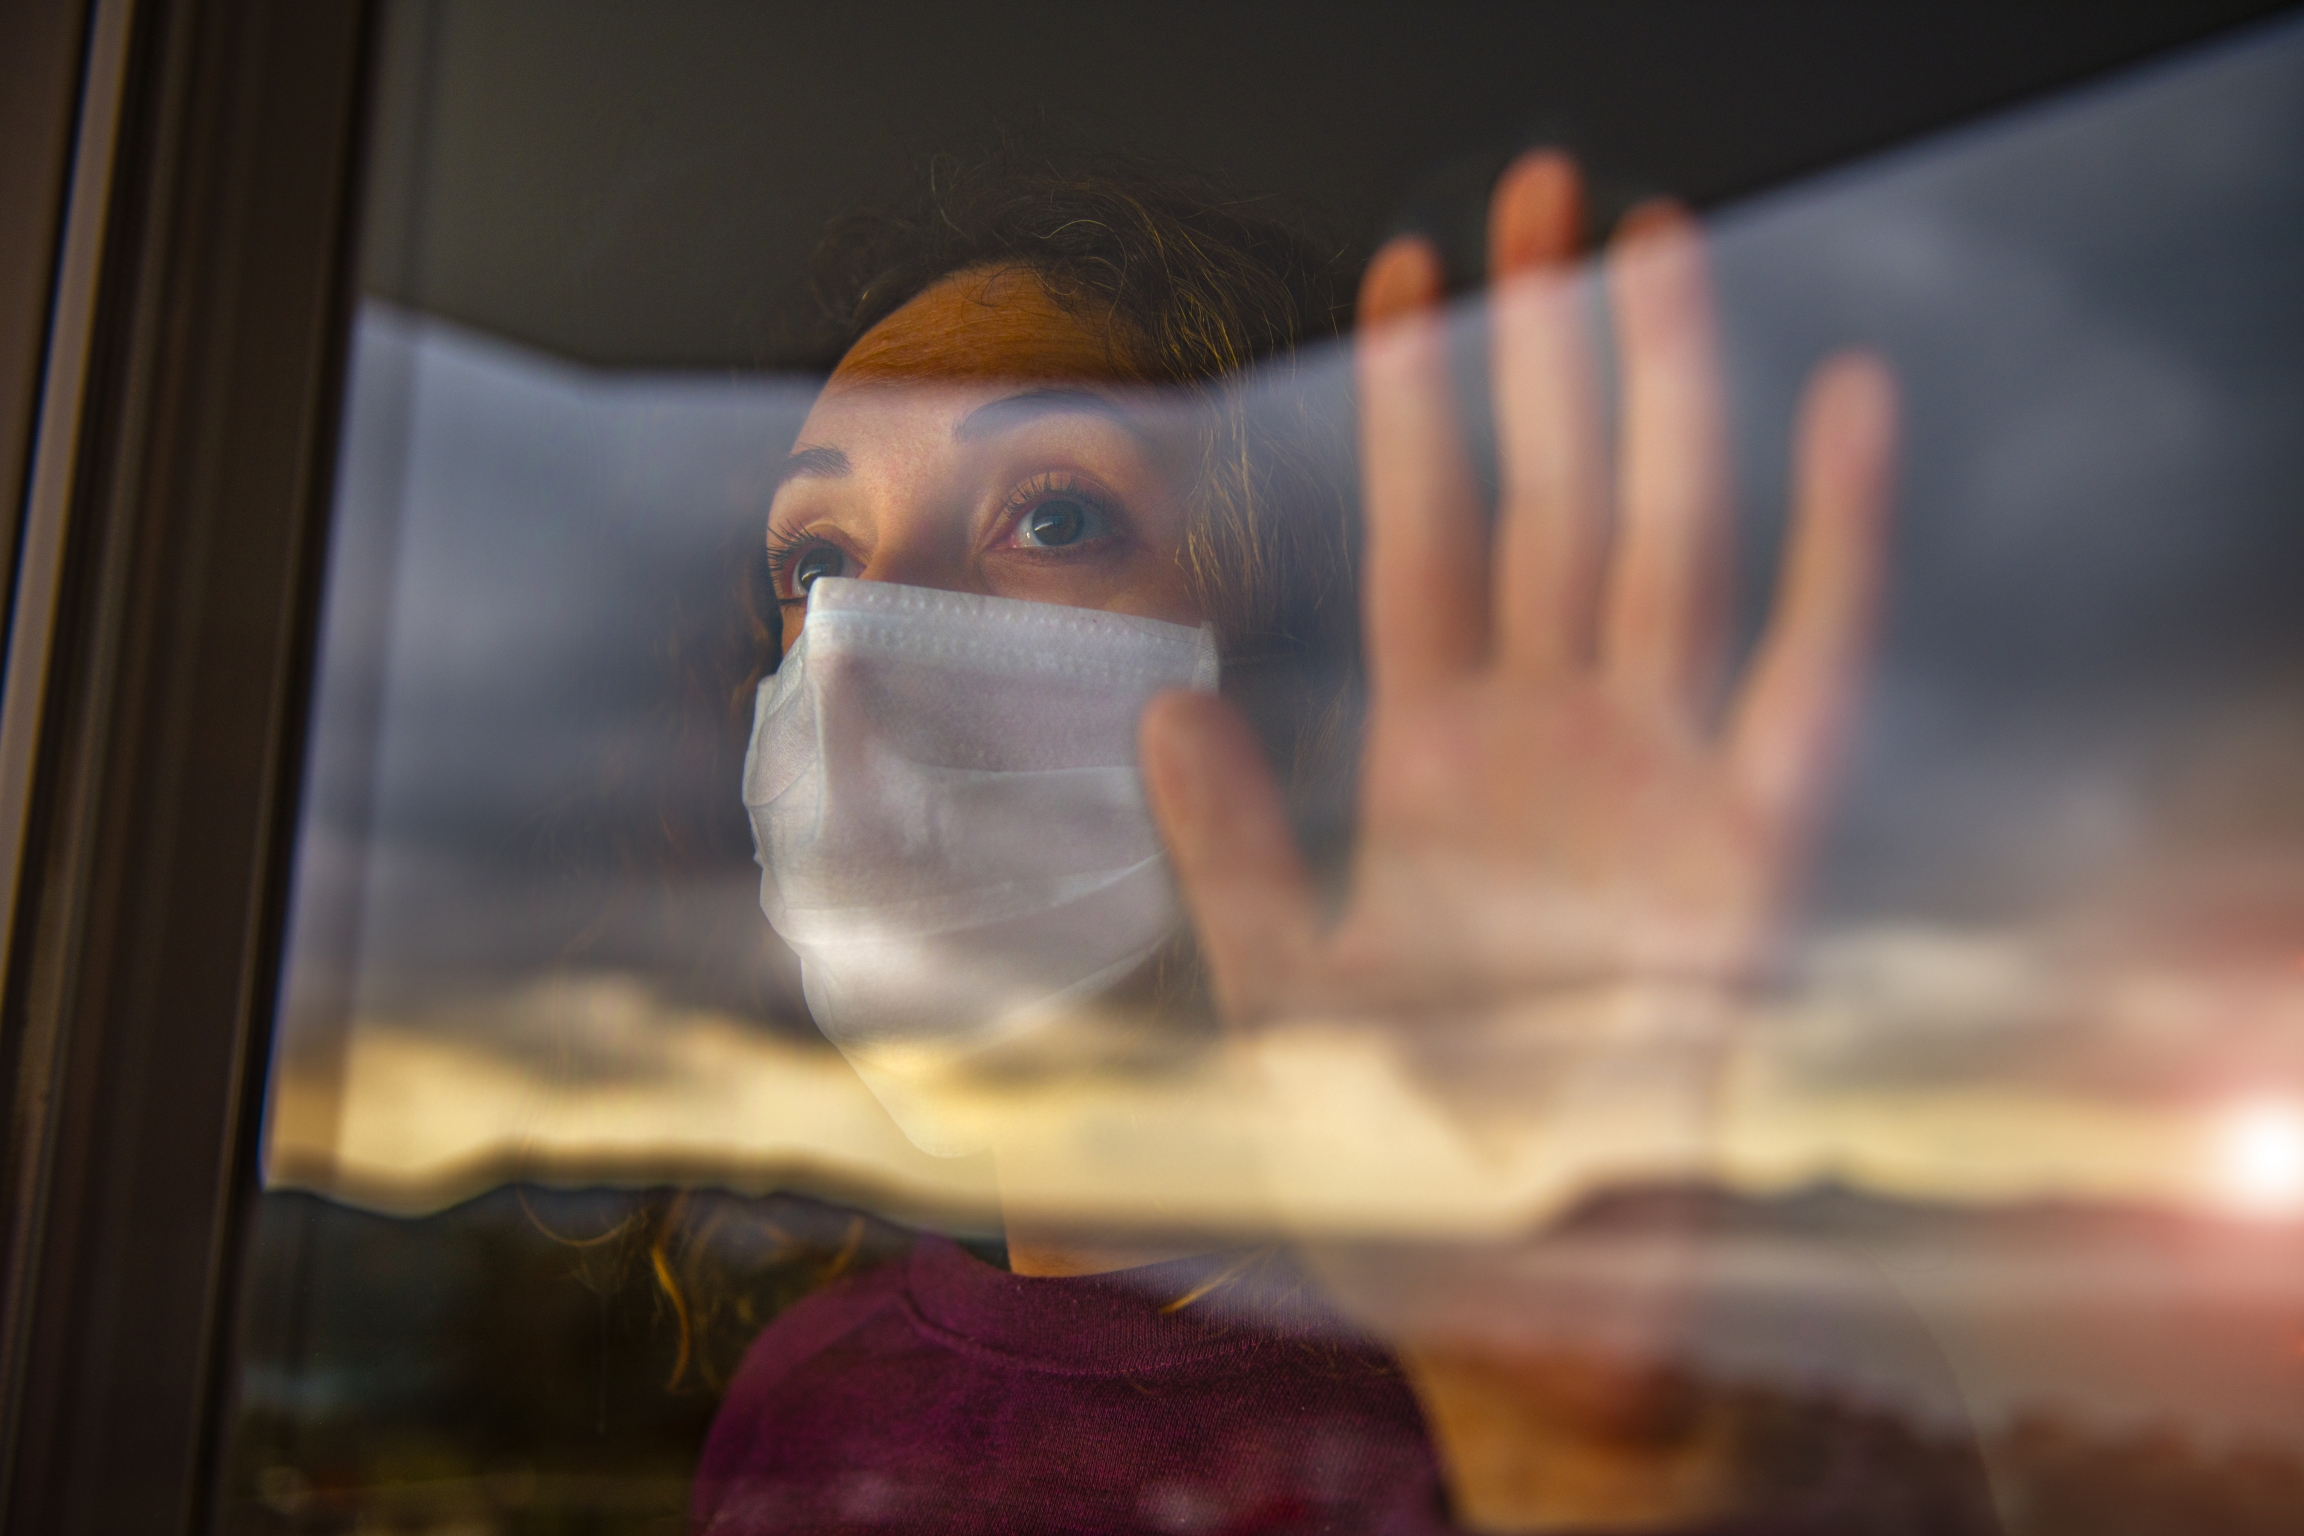 A woman with a mask looks out a window.